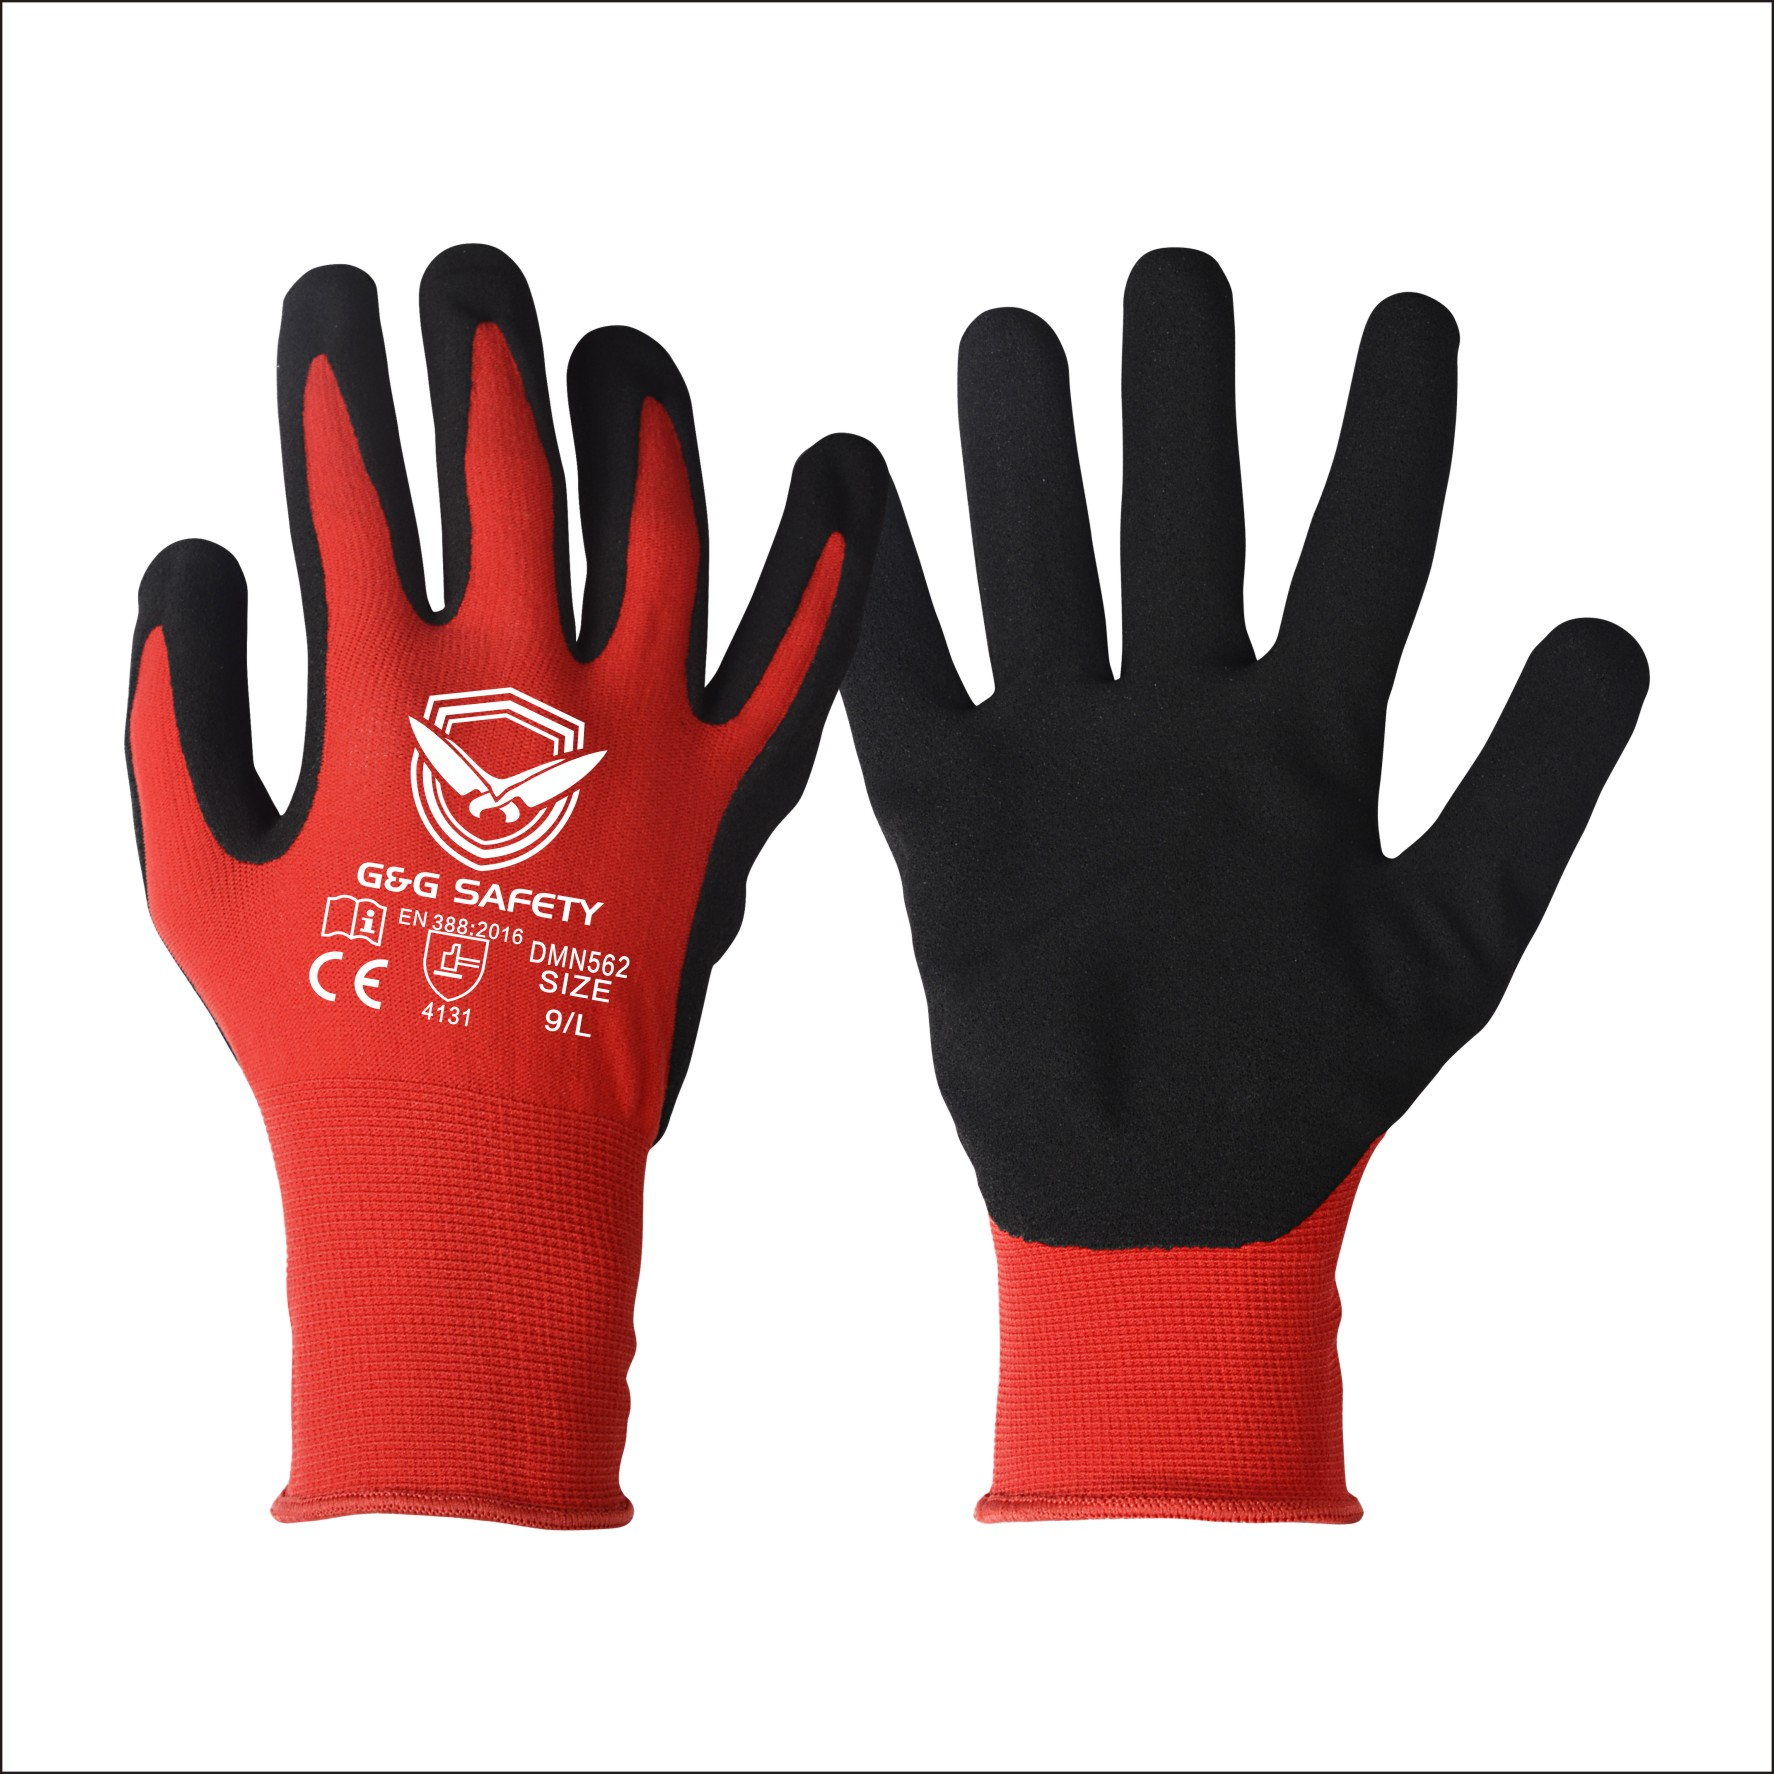 selling industrial safety glove from factory in China